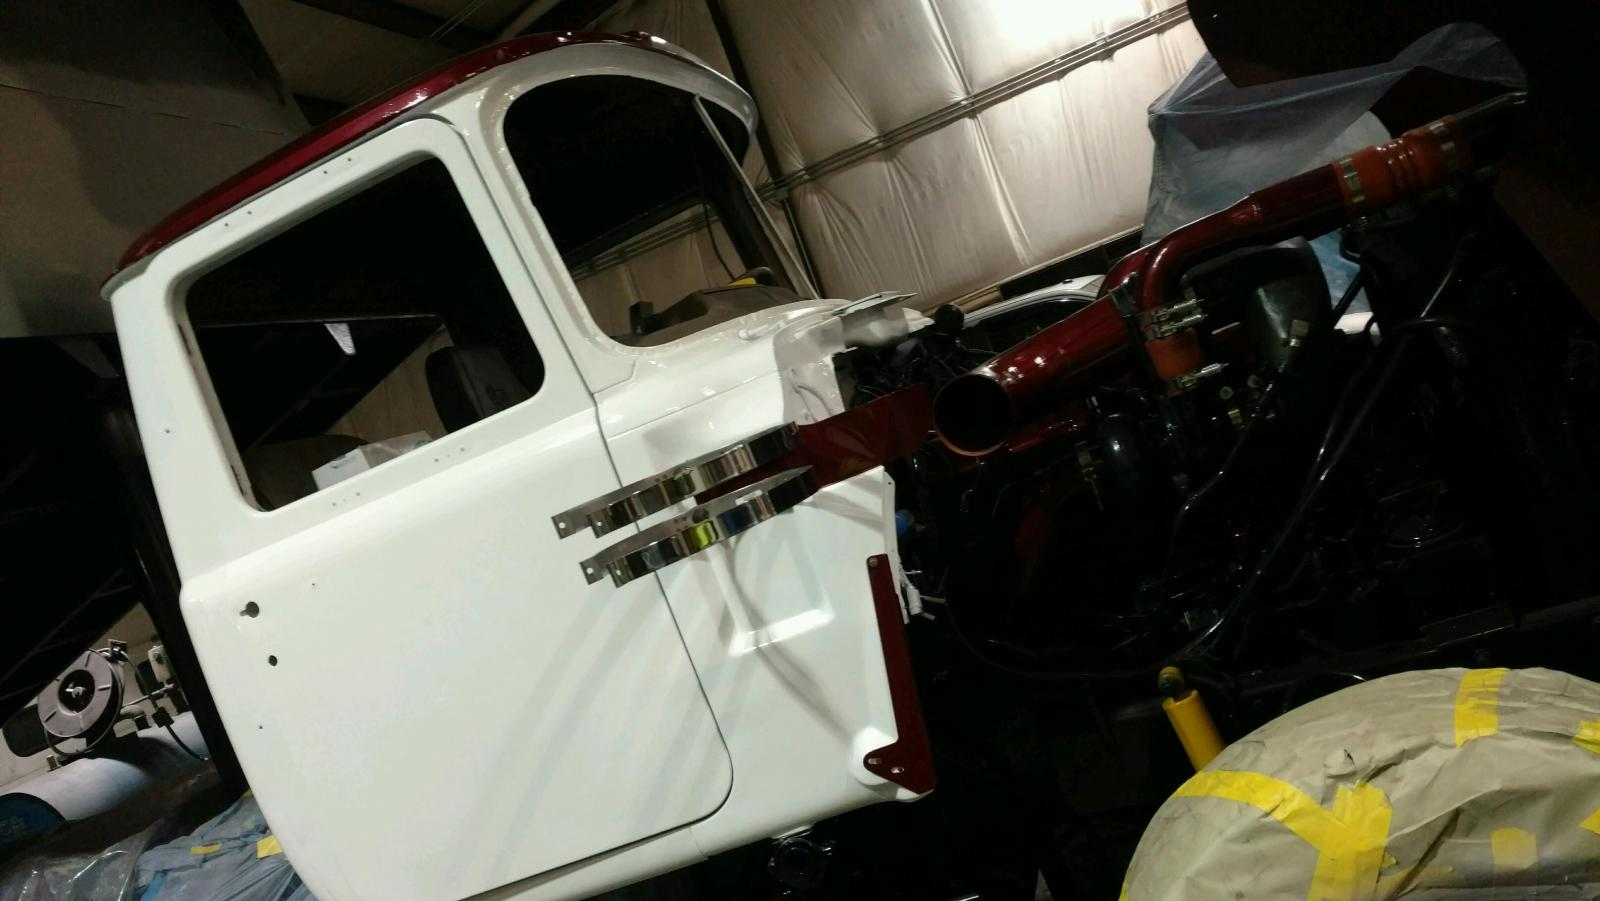 mack-2nd day of reassembly 011.jpg